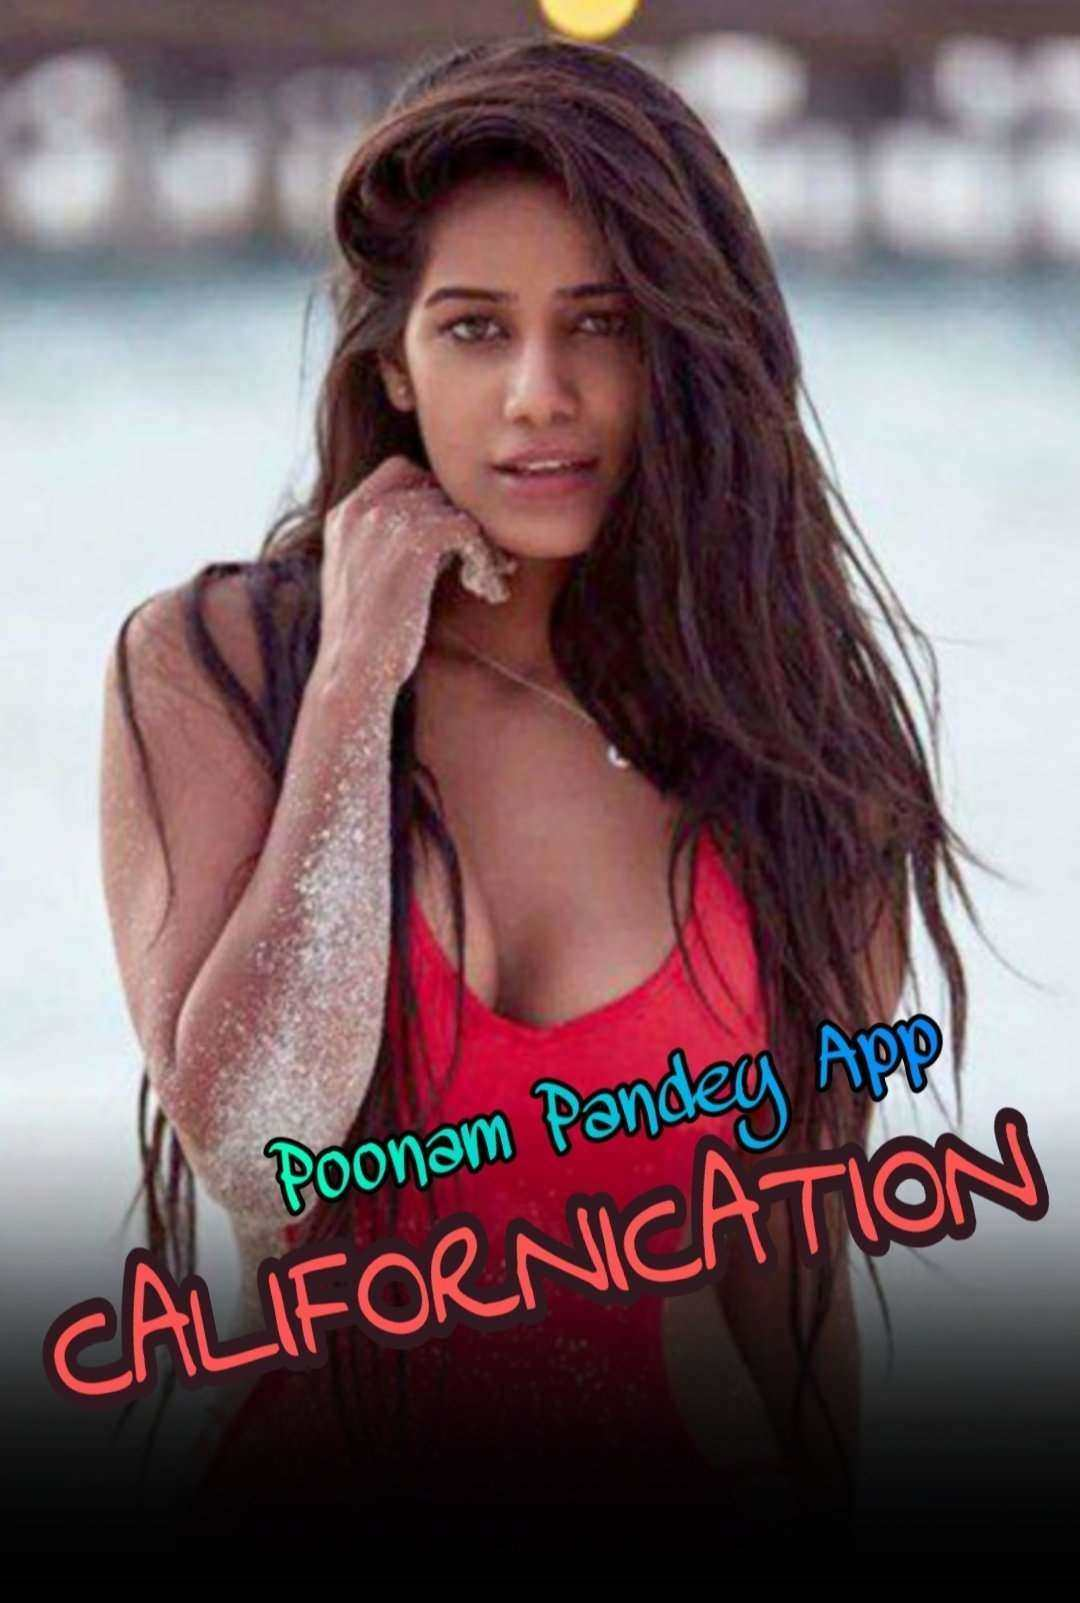 Californication 2020 Poonam Pandey Hindi Video 720p HDRip 100MB Download